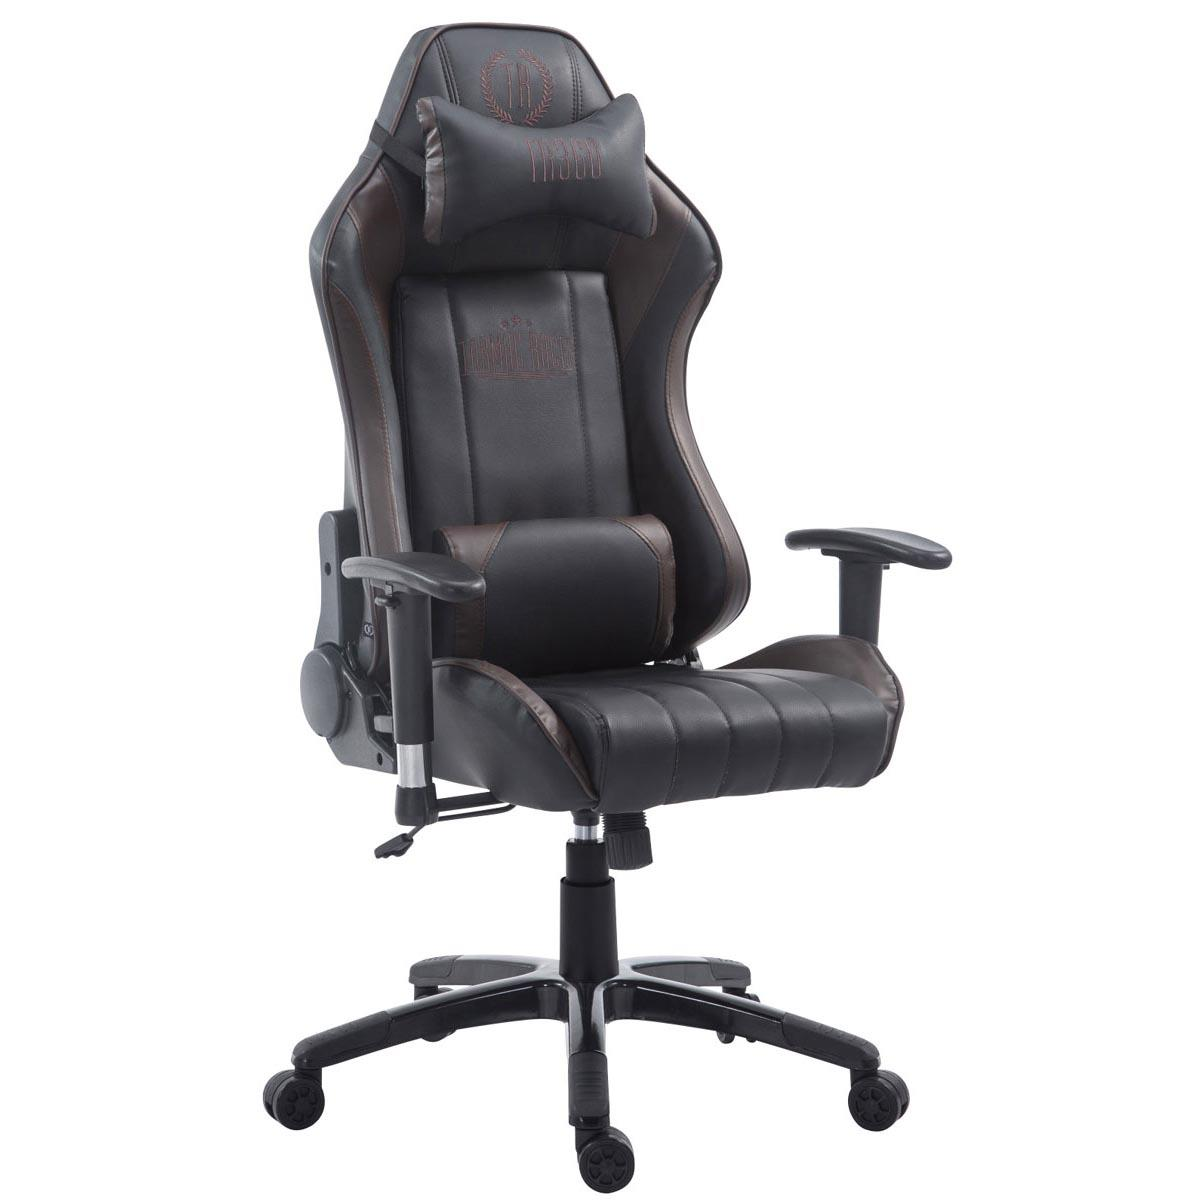 Silla Gaming TURBO, Respaldo Reclinable, Cojines Lumbar y Cervical, En Piel Negro/Marrón